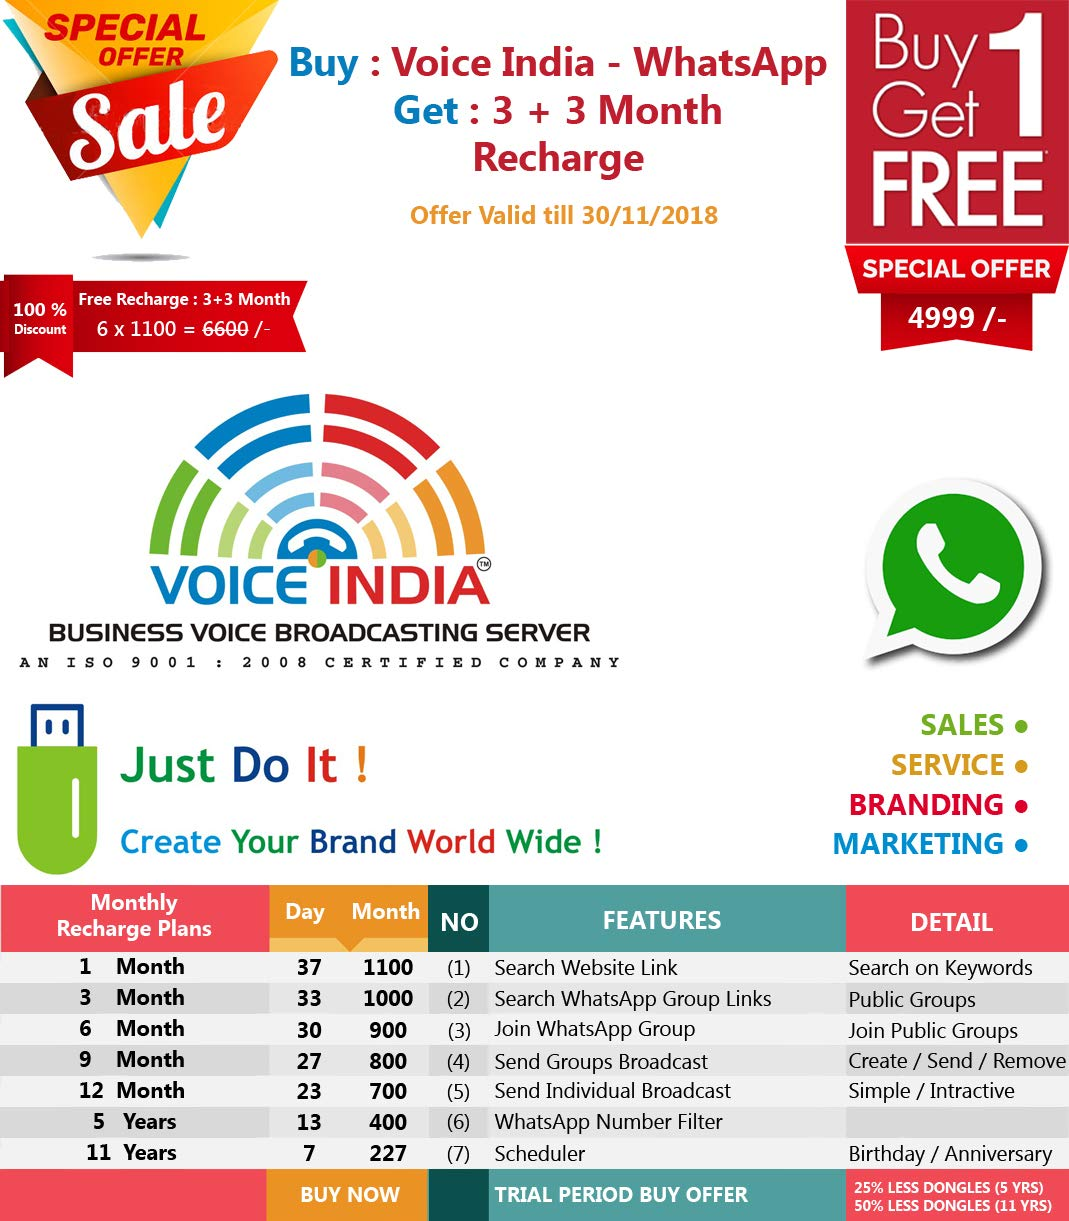 VOICE INDIA ® - WHATSAPP DONGLE : TEXT, IMAGE, AUDIO, VIDEO